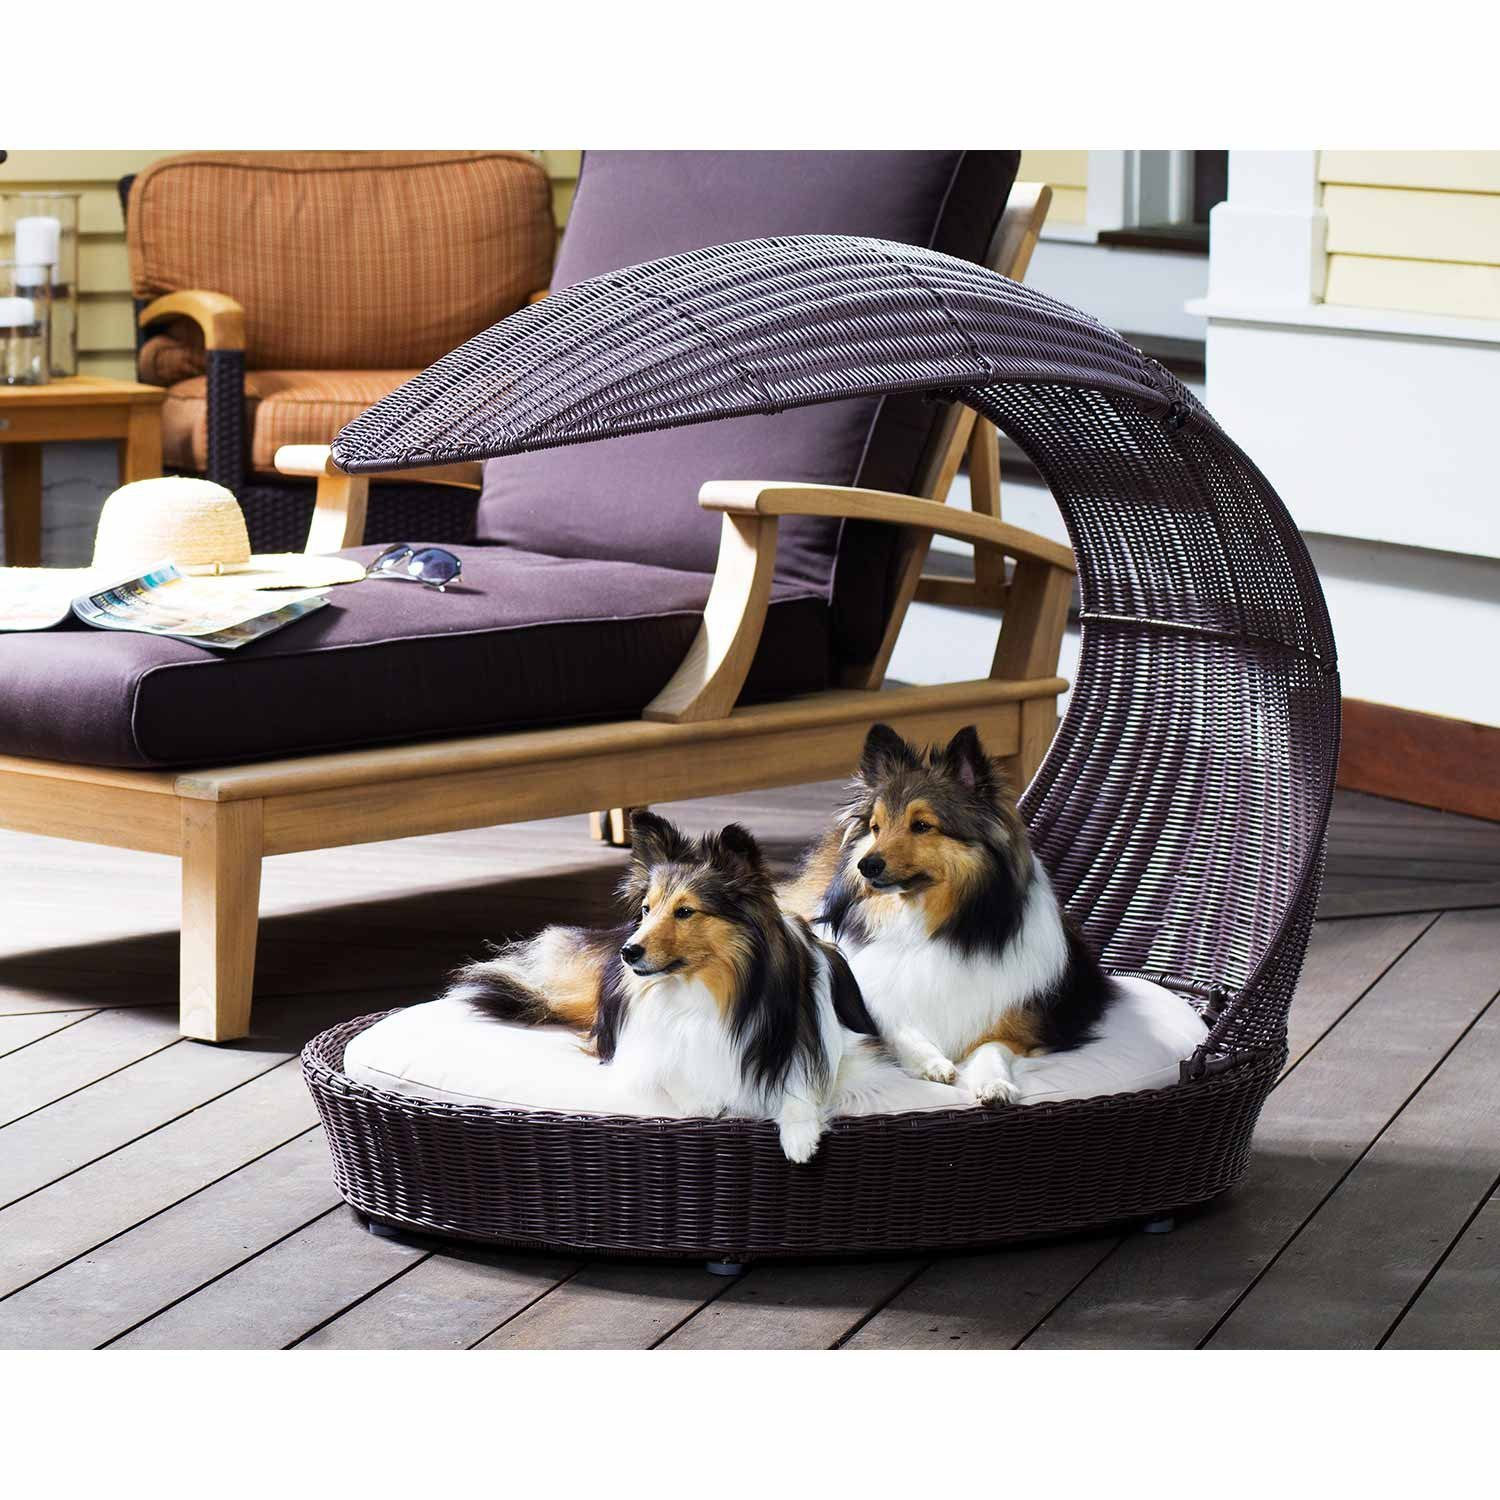 big dog furniture. It Can Sometimes Be Hard To Look For A Nice Piece Of Pet Furniture Big Dogs, But There Is Dog Bed From The Refined Canine That Large Breed Owners P